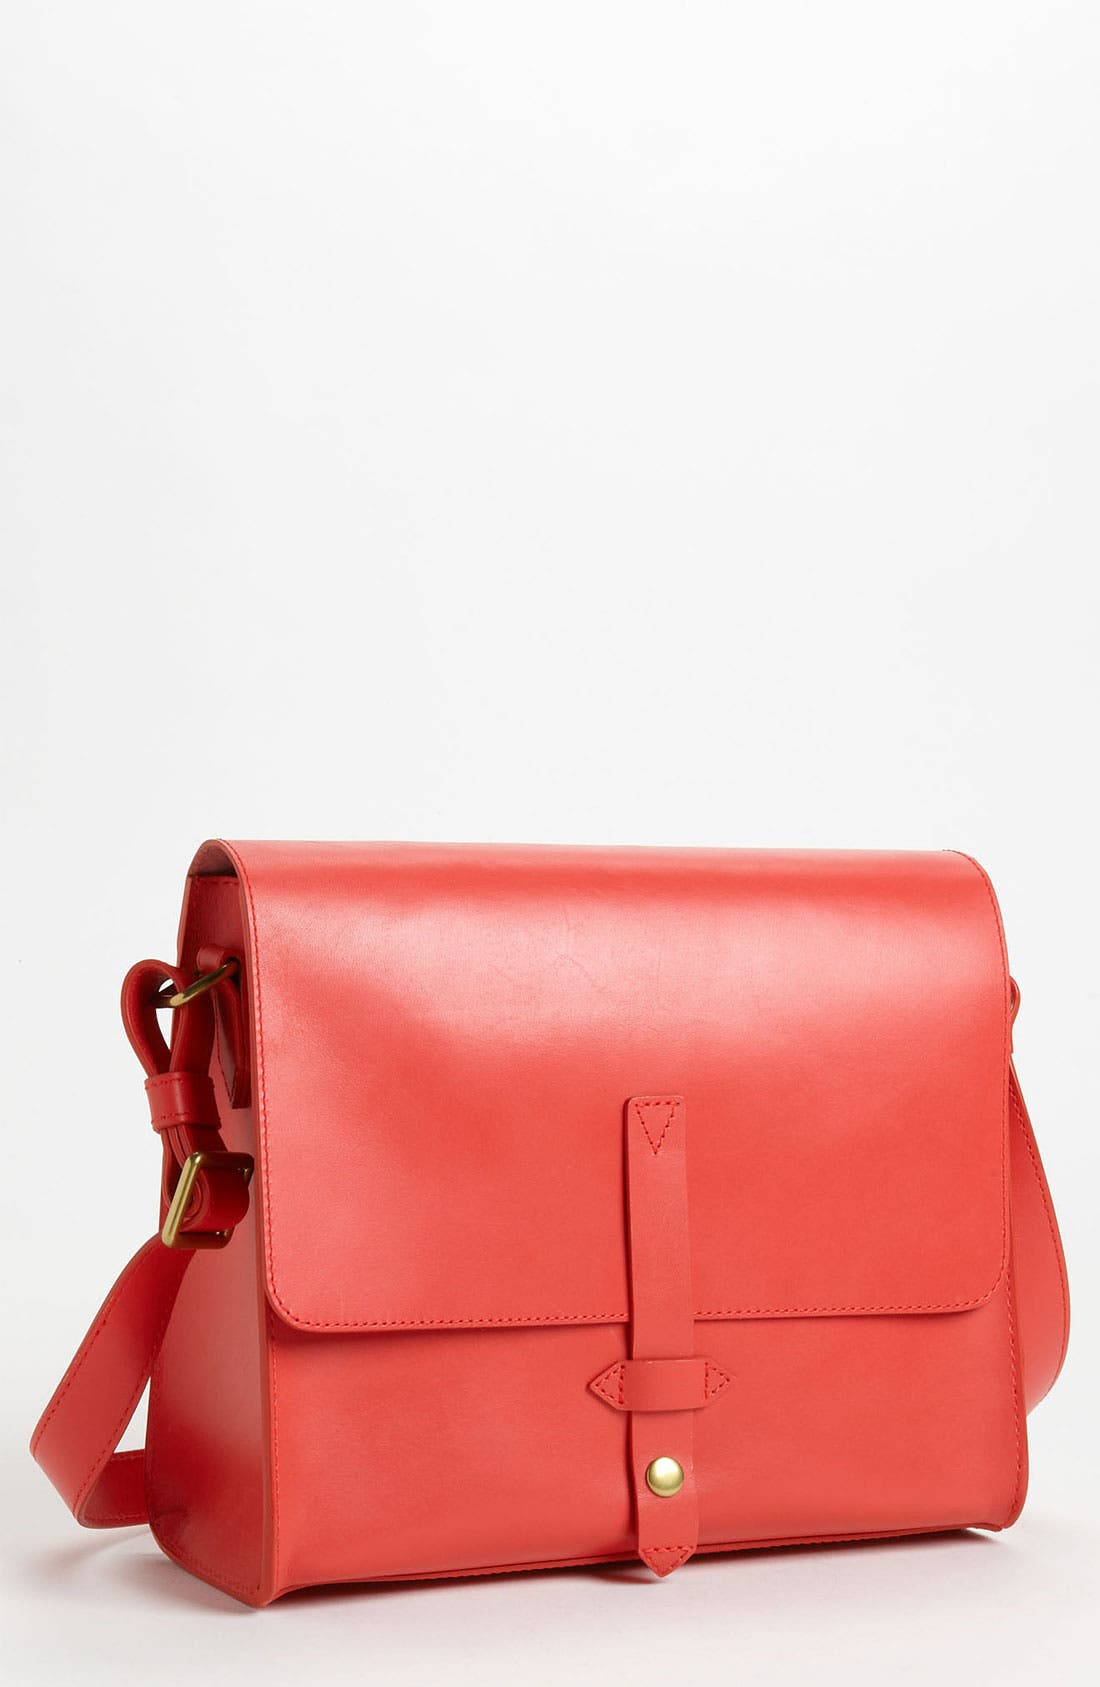 Main Image - IIIBeCa By Joy Gryson 'Duane' Crossbody Bag